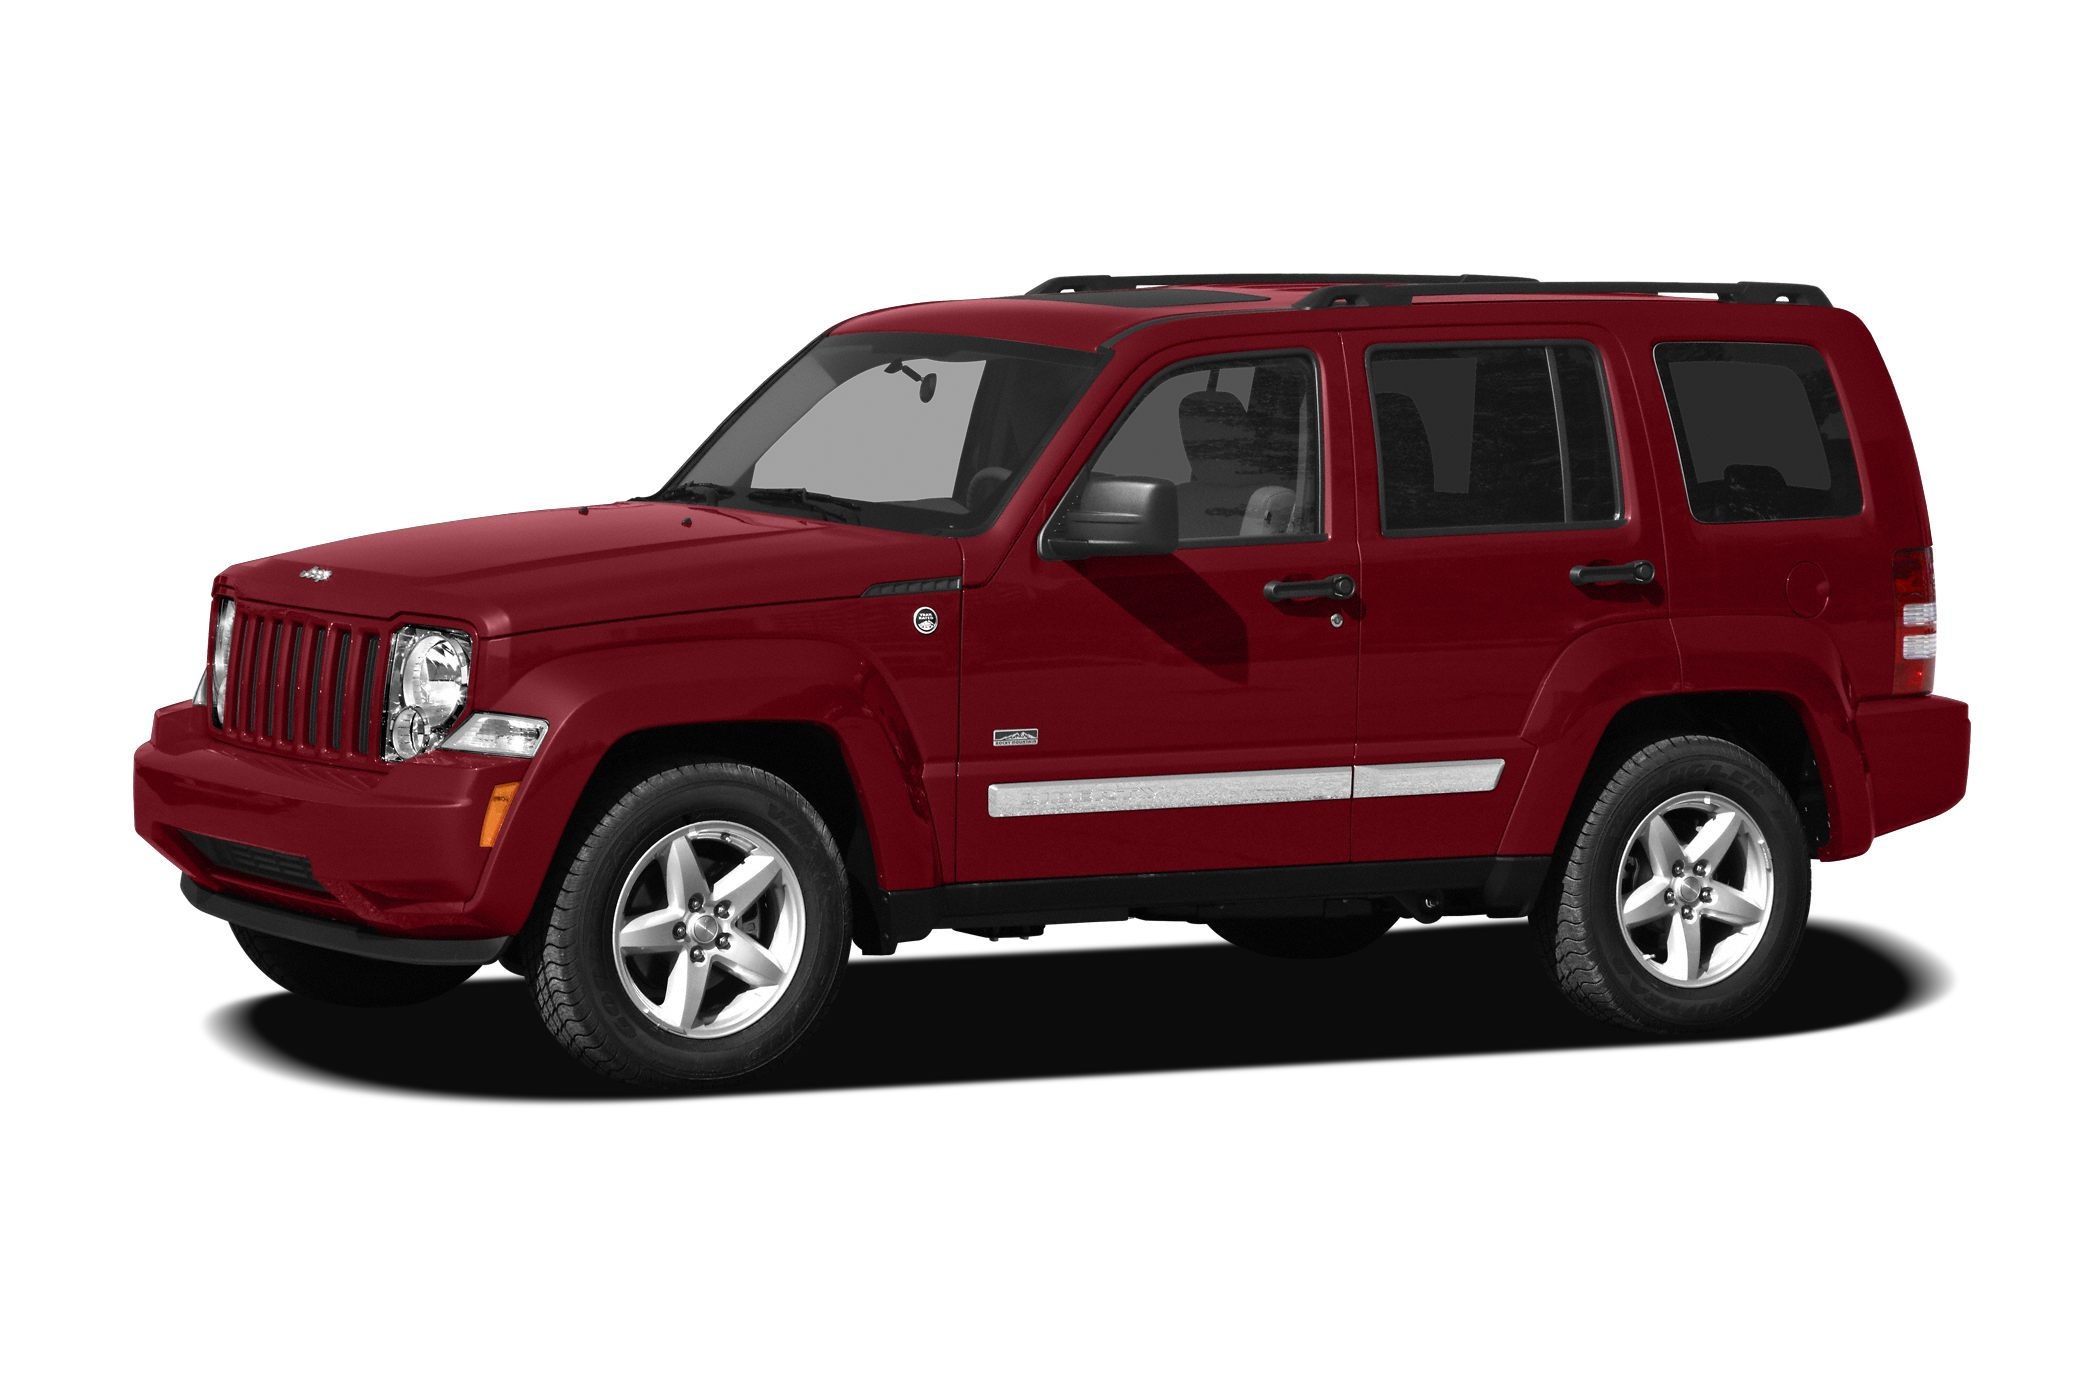 2012 Jeep Liberty Sport SUV for sale in Martinsville for $17,995 with 44,127 miles.